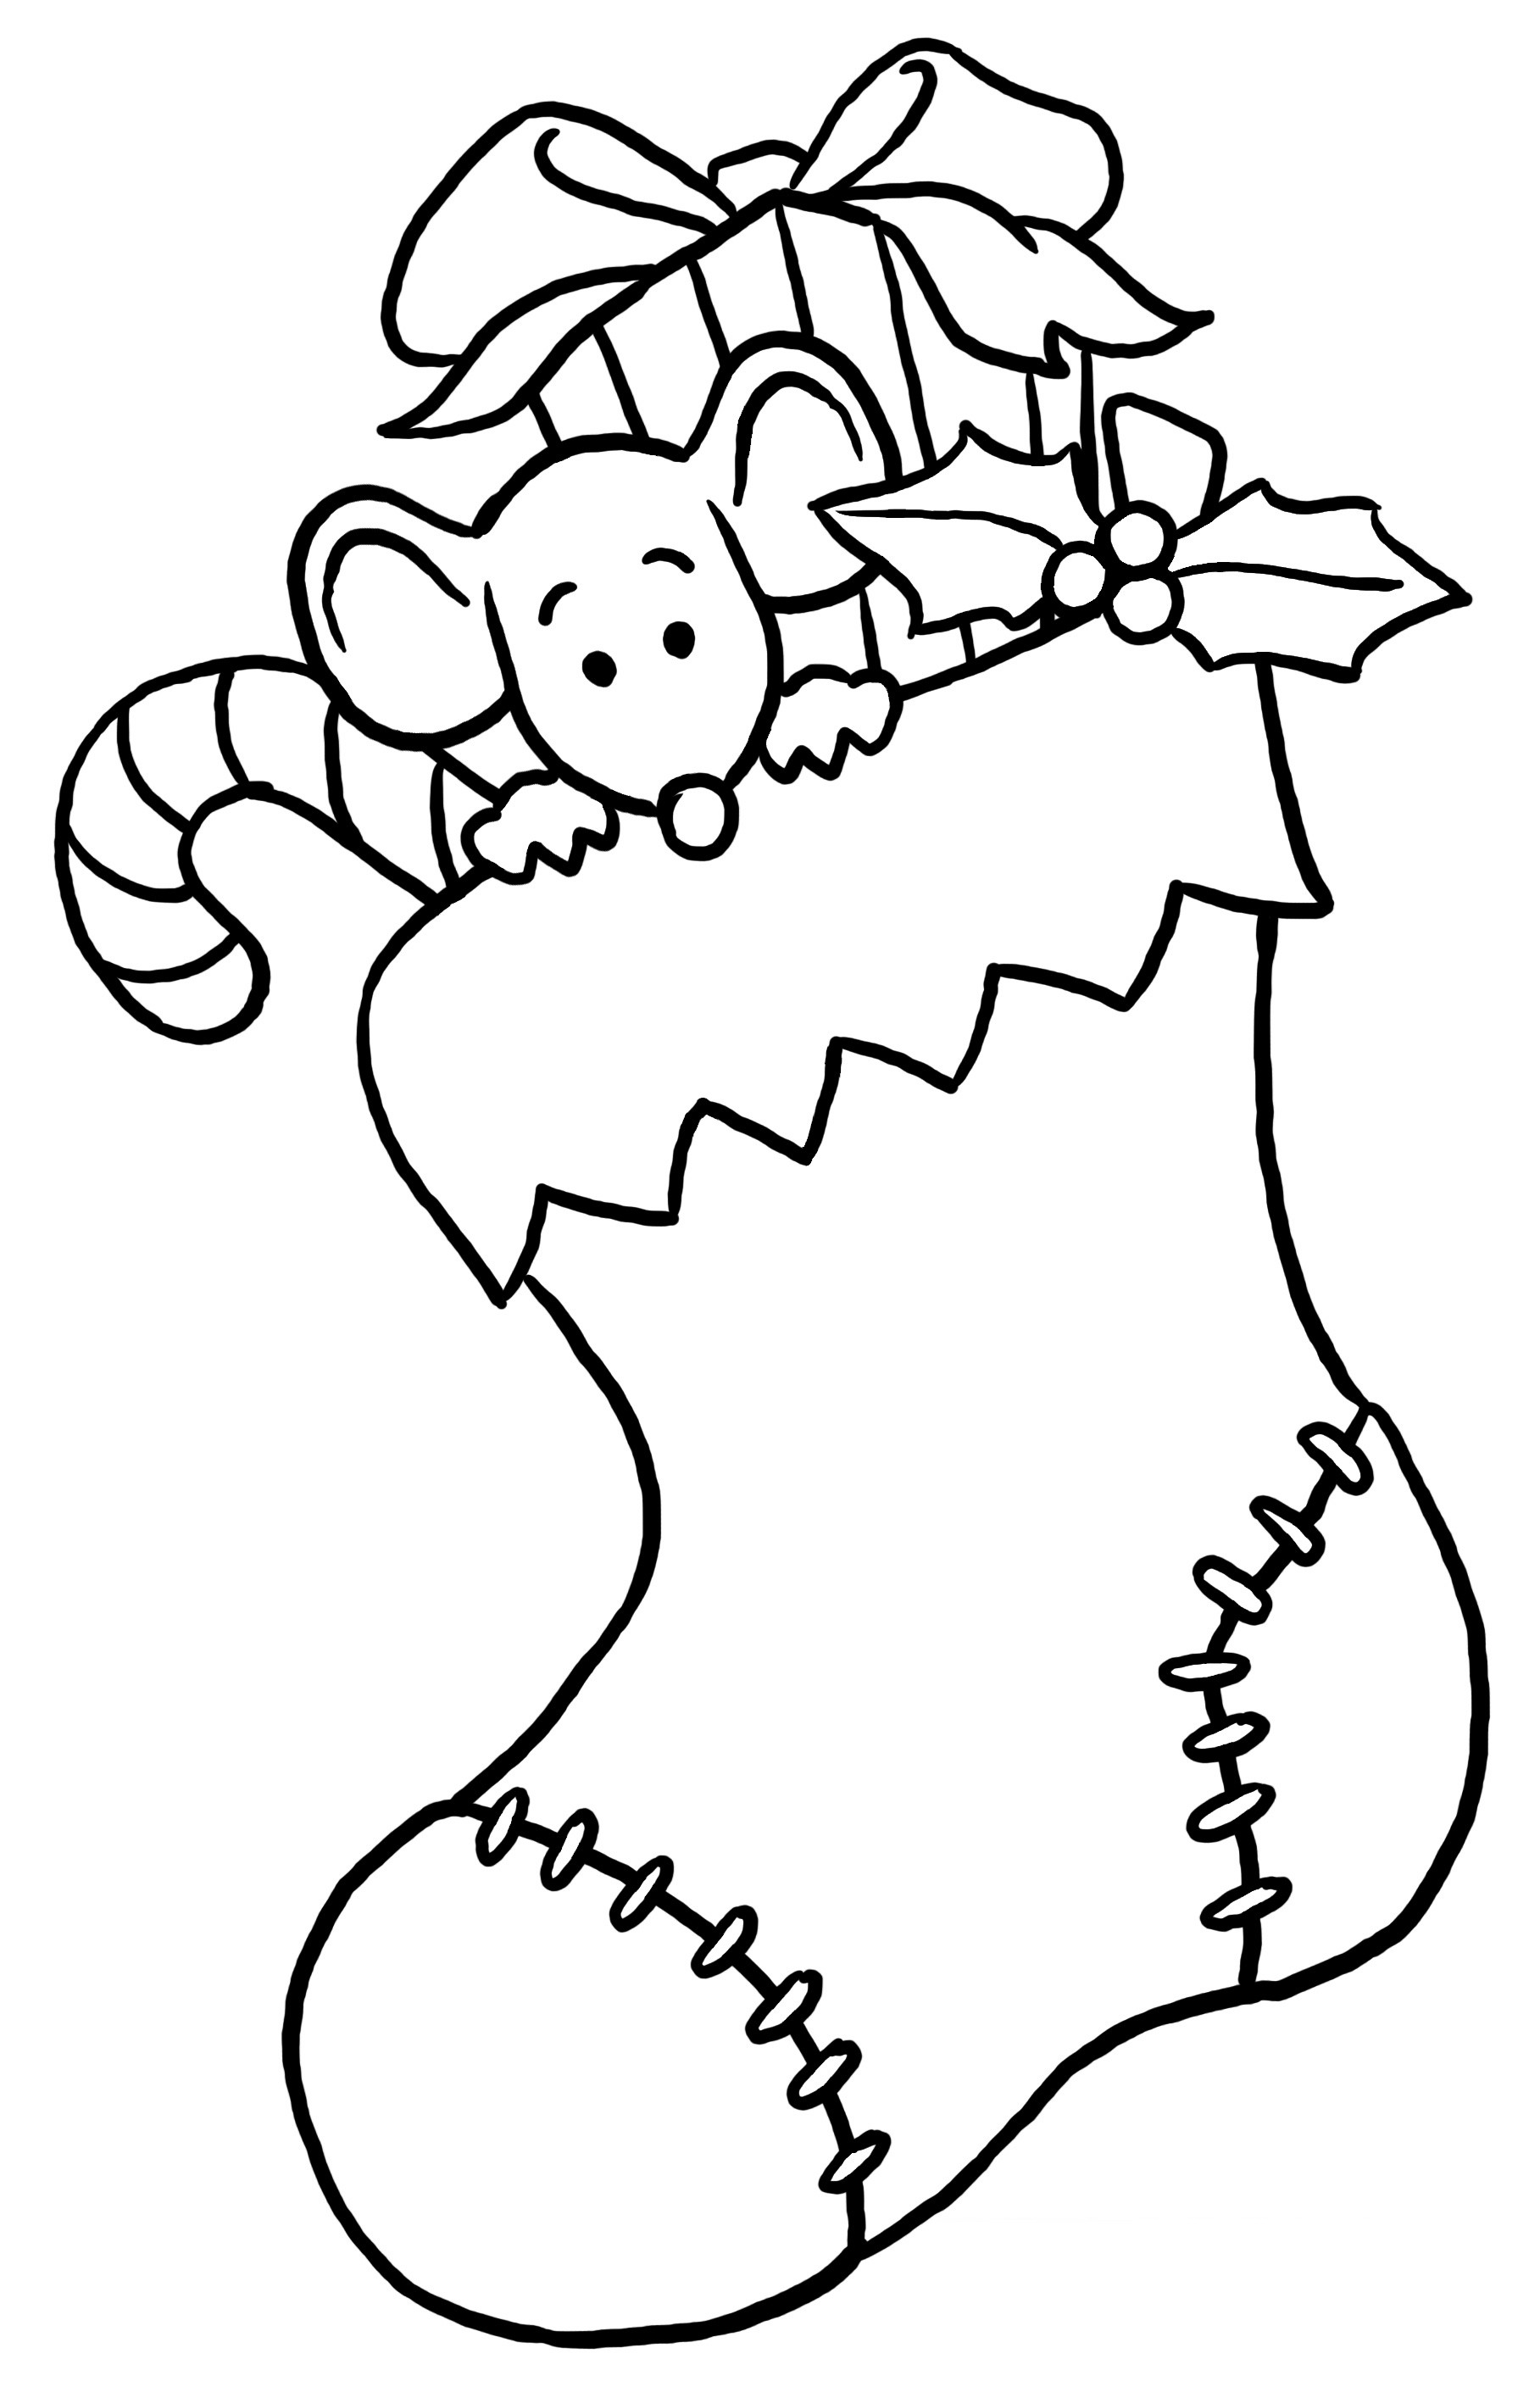 Free Printable Christmas Card Coloring Pages With Page Archives Liderex Co